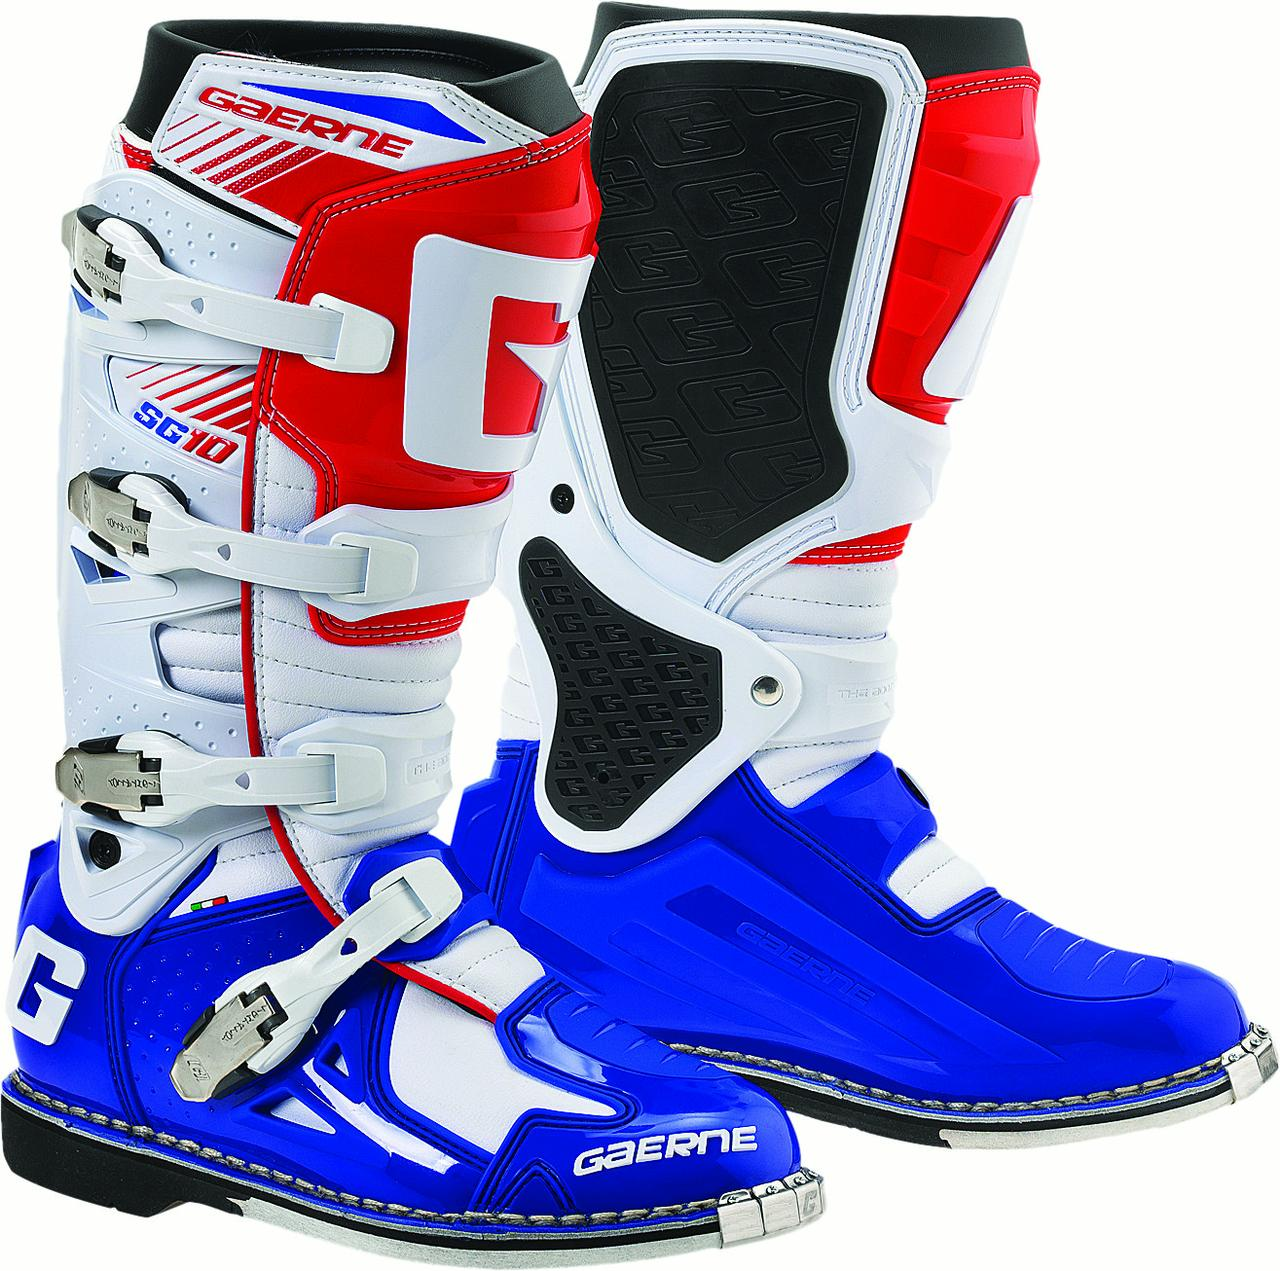 GAERNE SG-10 BOOTS RED/WHITE/BLUE 11